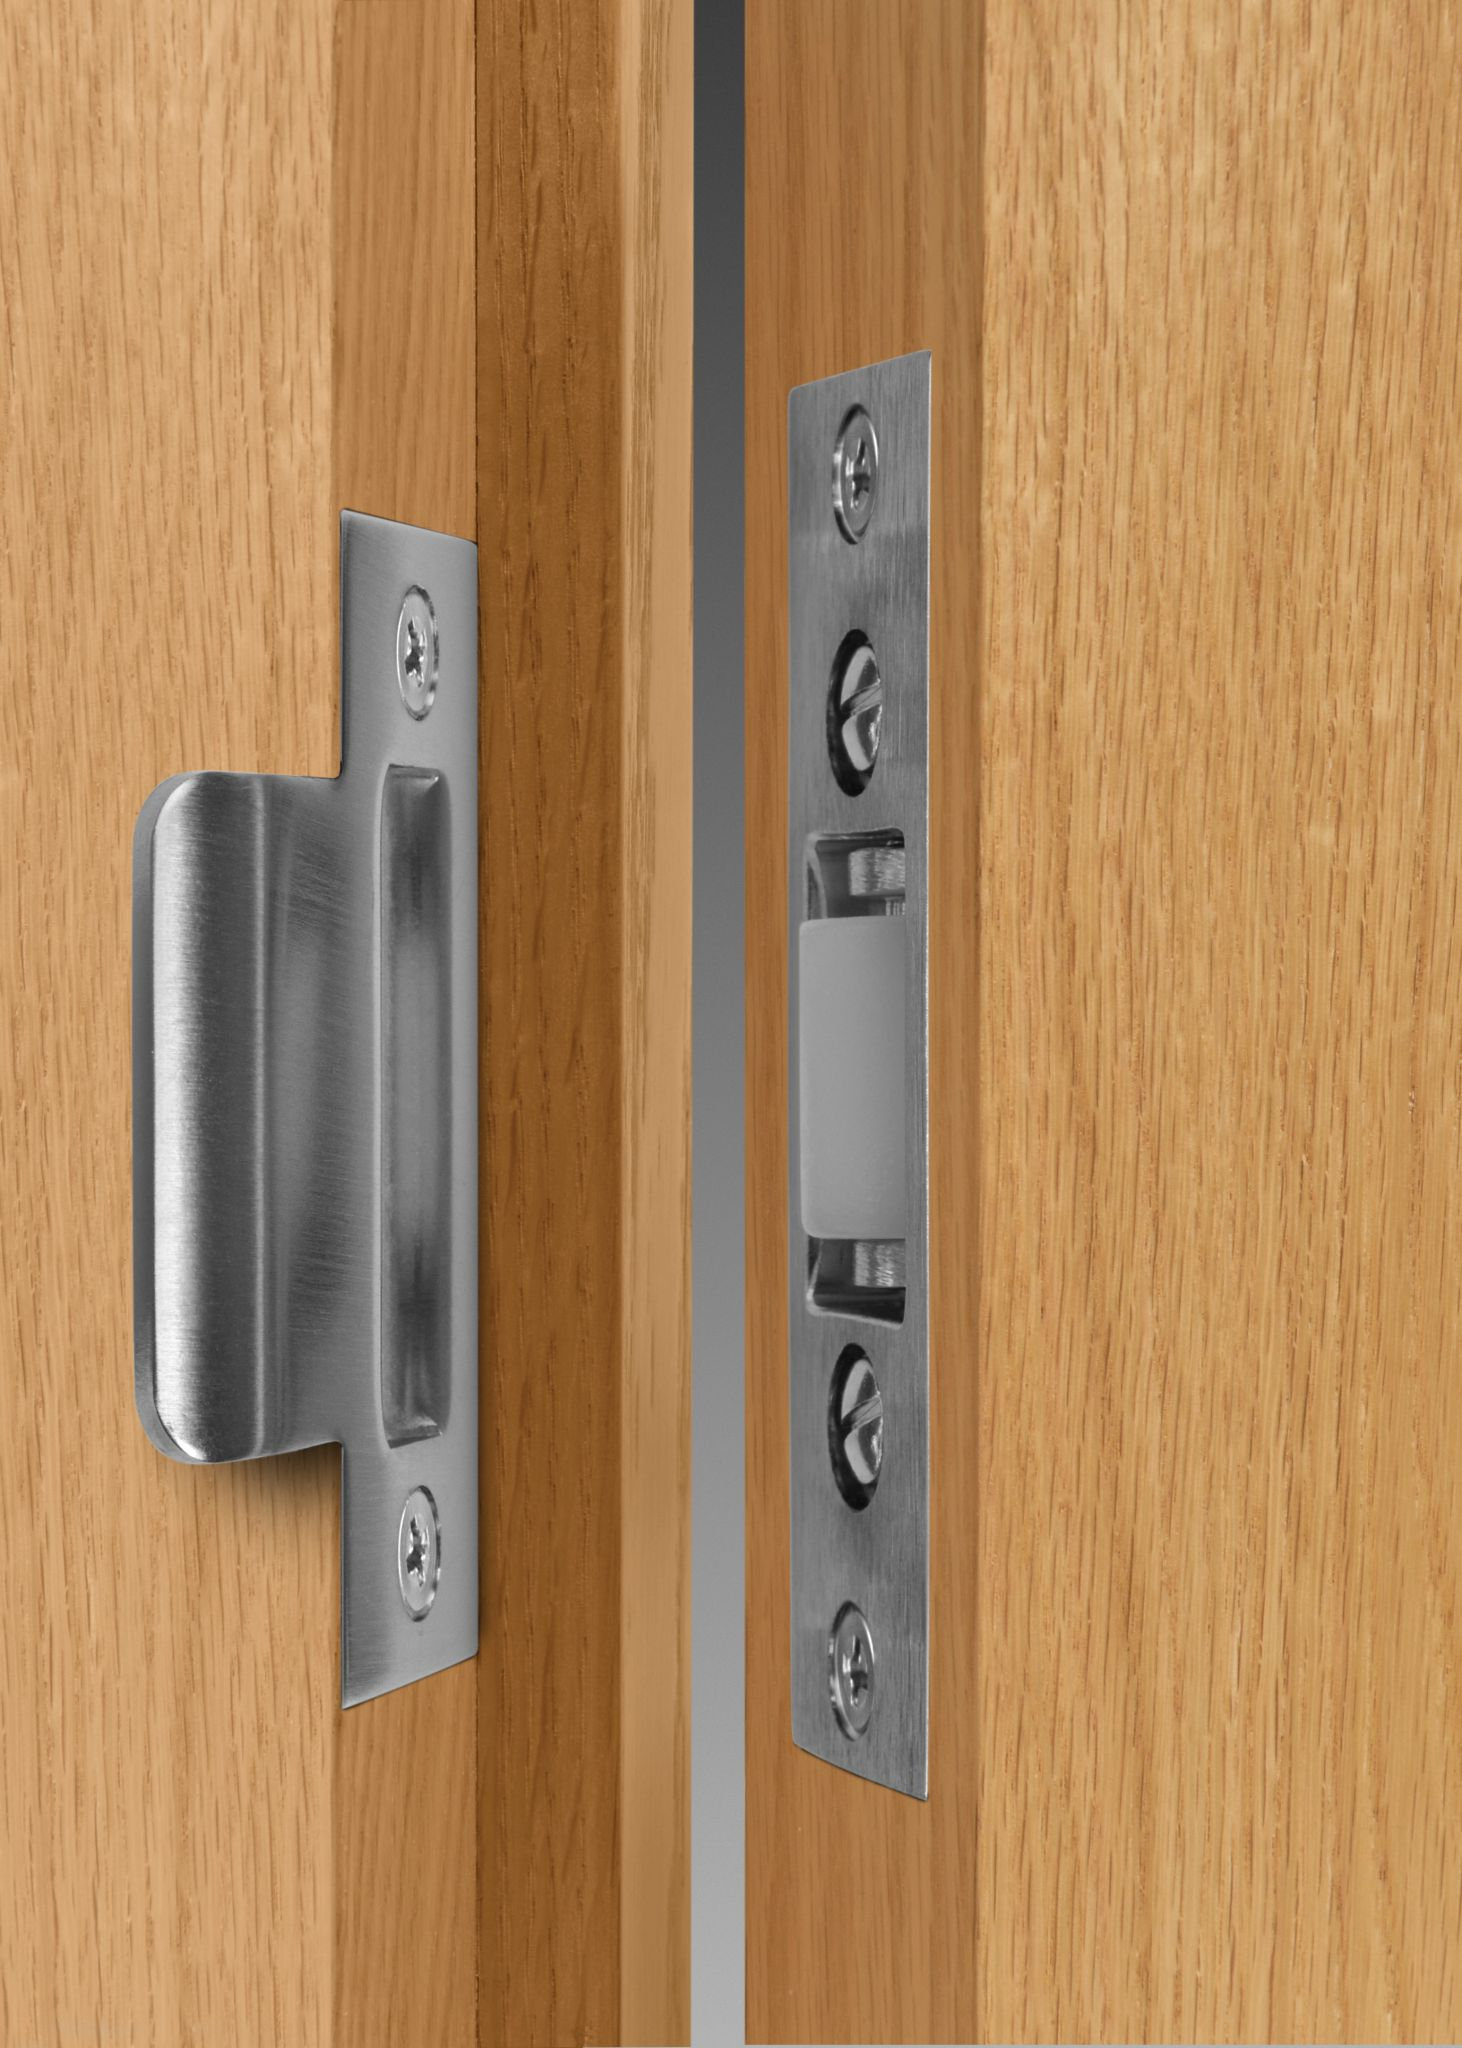 Specifying Doors For A Healthier Environment Construction Specifier